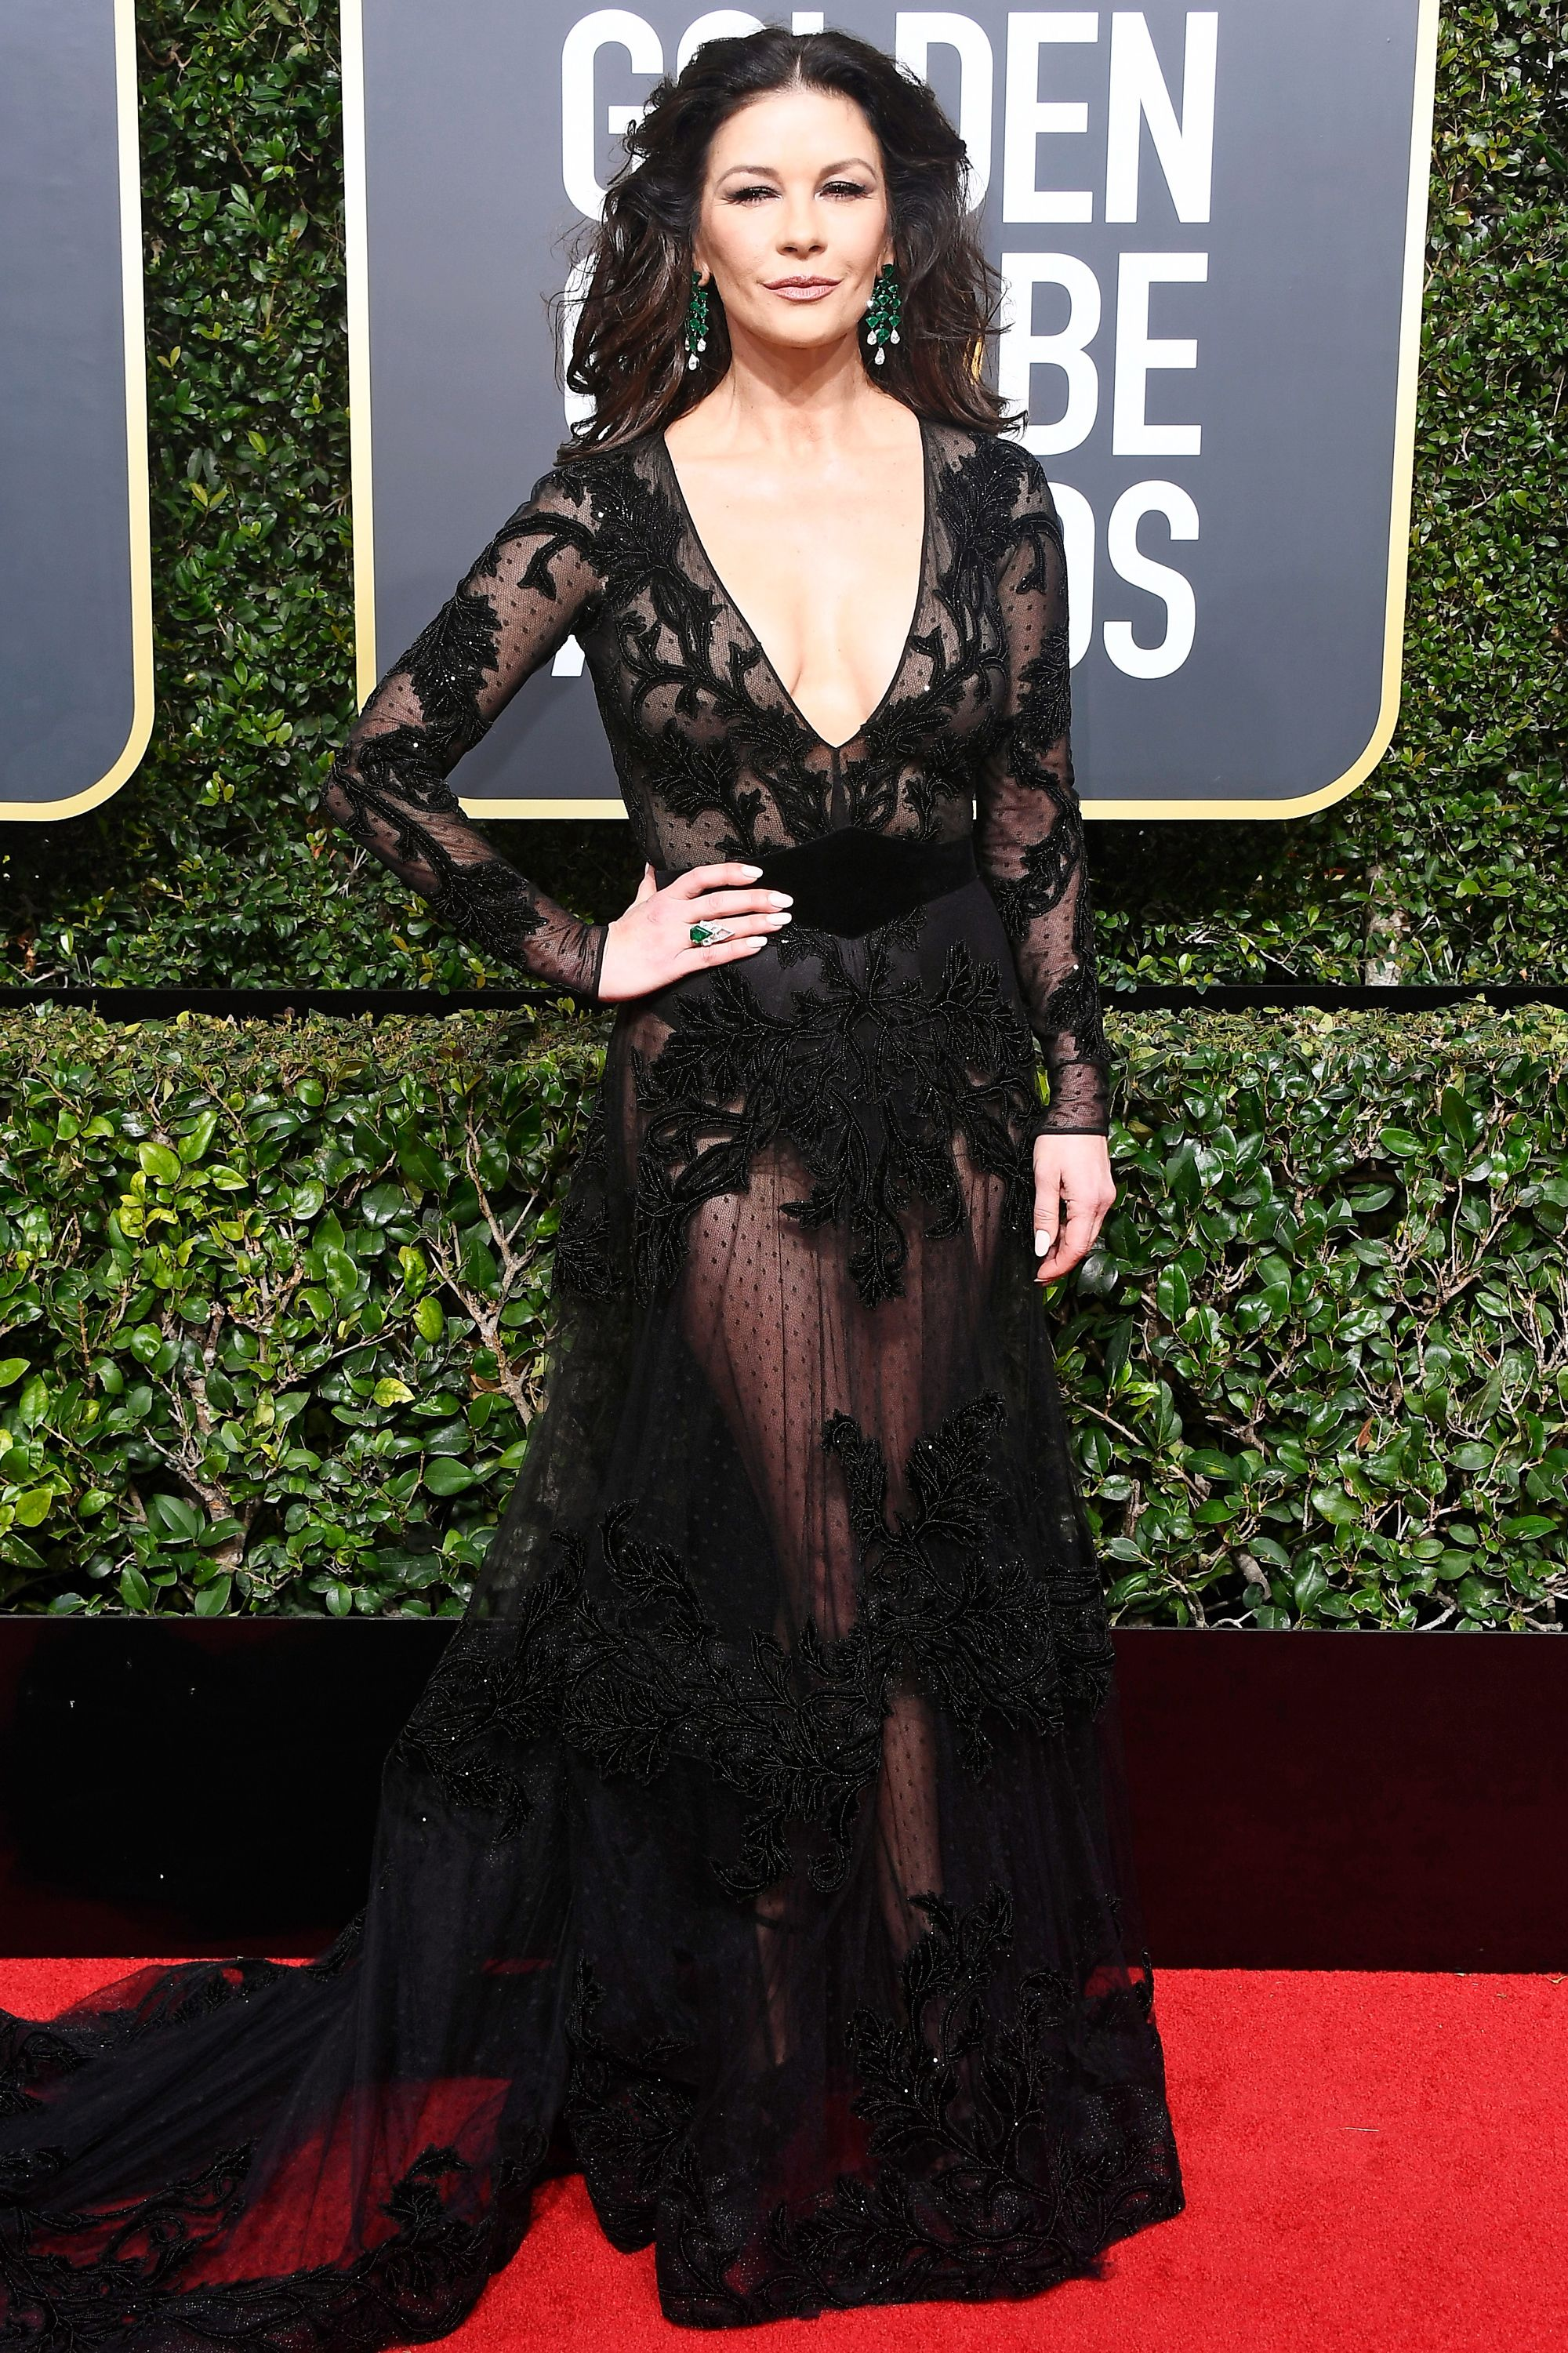 Golden Globes Fashion And All Looks From The Red Carpet Red Carpet Dresses Red Carpet Fashion Celebrity Red Carpet